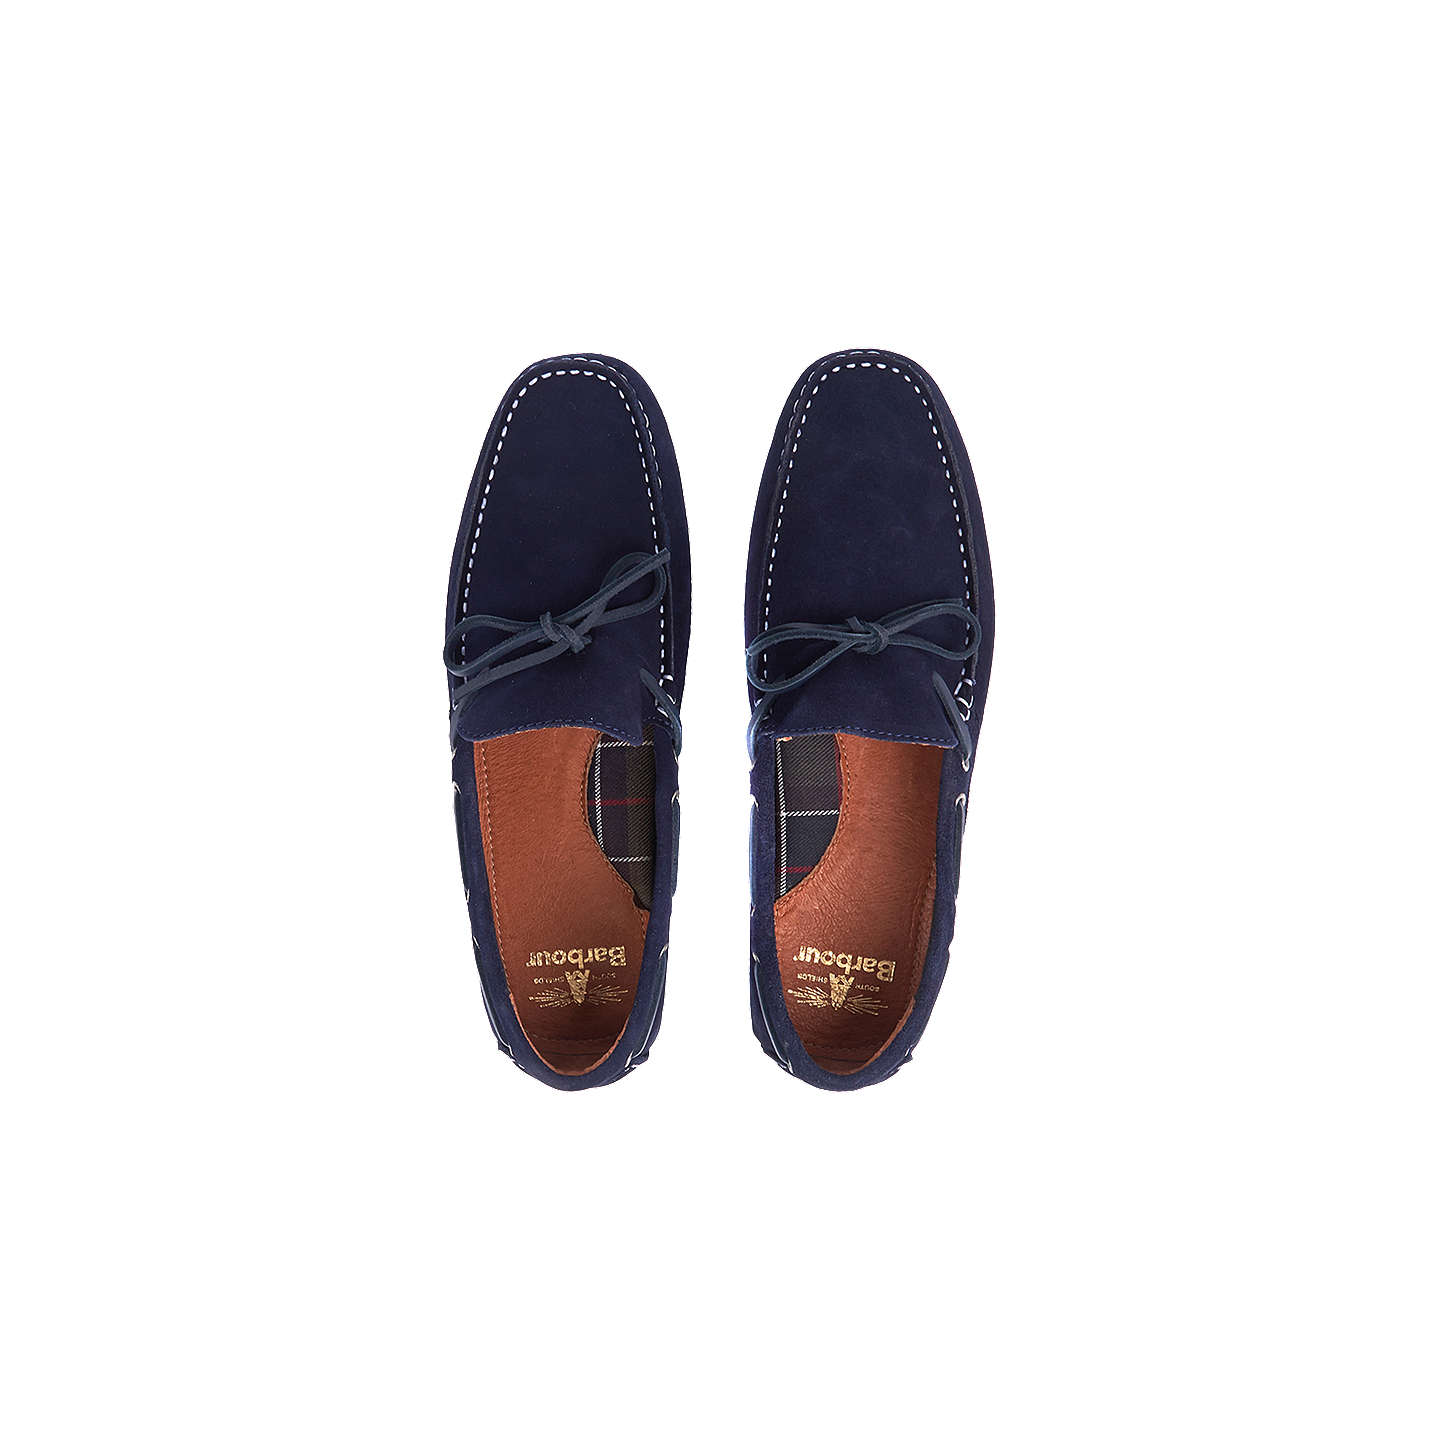 BuyBarbour Eldon Suede Penny Driver Loafers, Navy, 9 Online at johnlewis.com